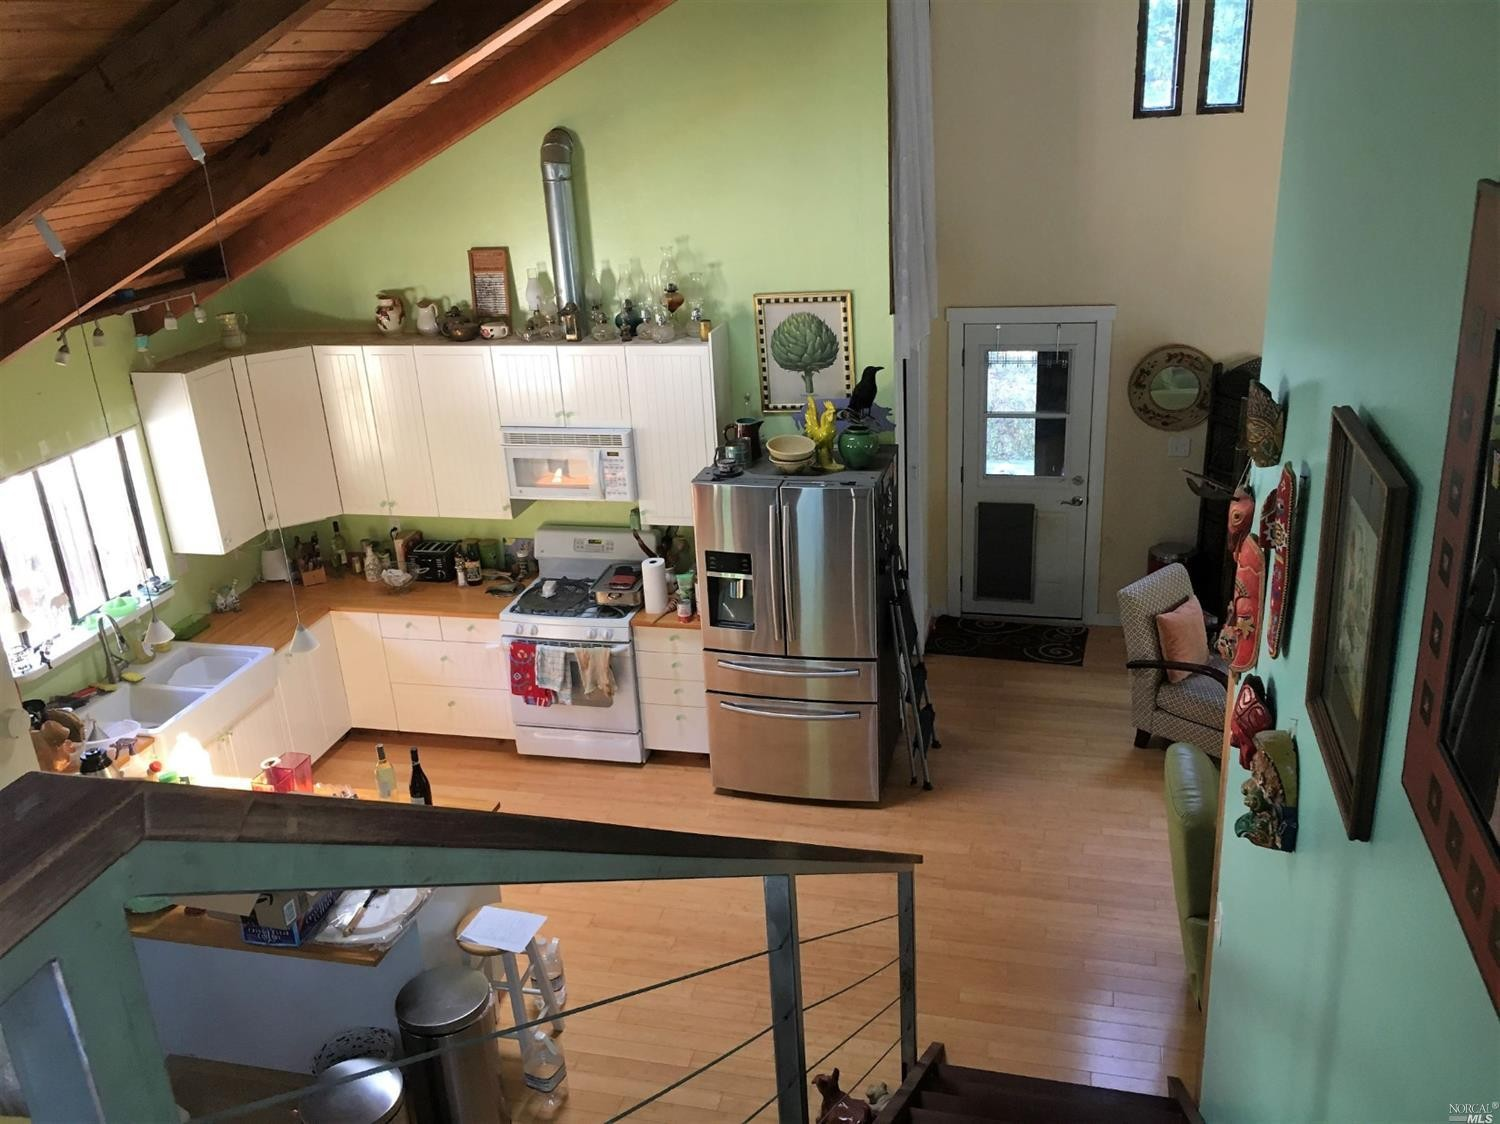 Looking down at the kitchen in a home for sale on Guntly Road in Philo, CA.